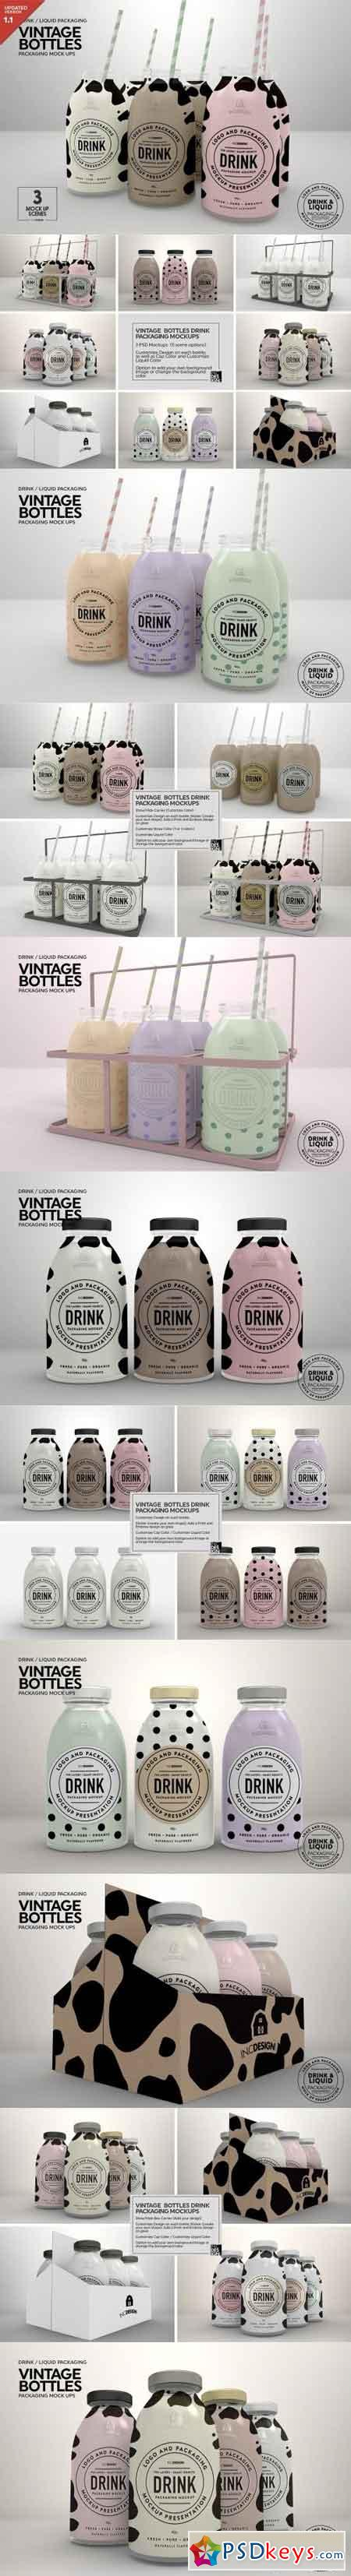 Vintage Bottles Packaging Mockups 908479 Updated May 5